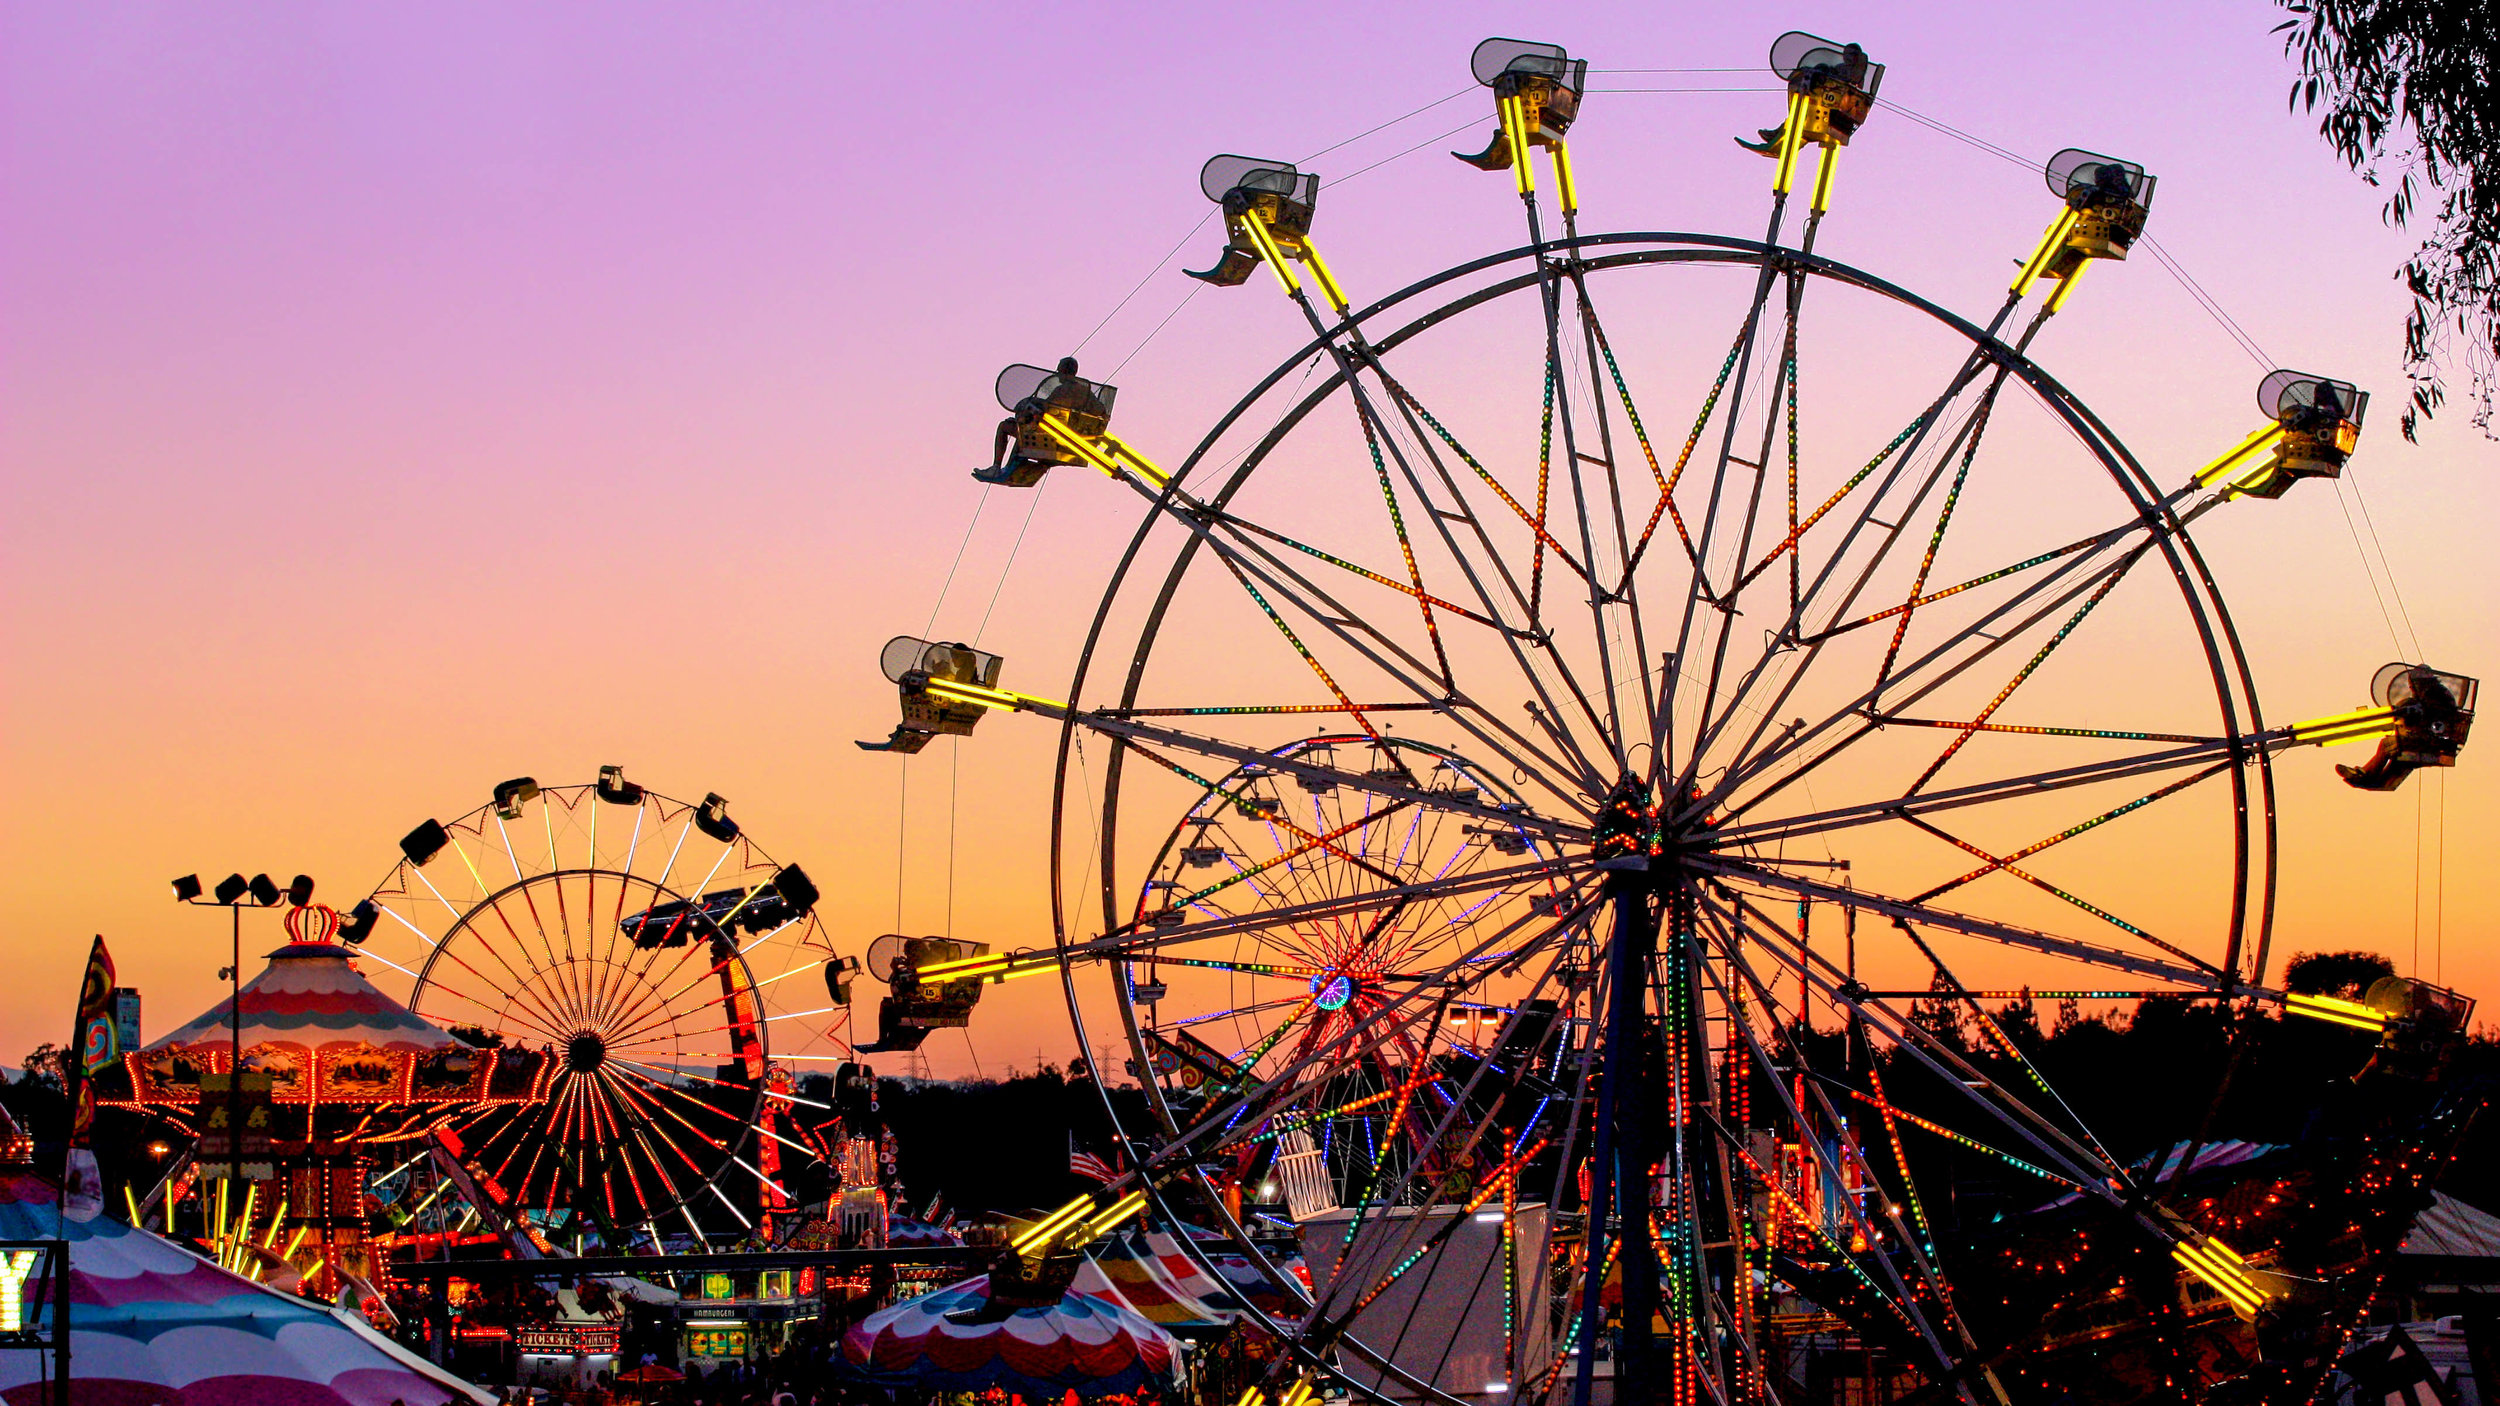 county-fair-5-alr-c169.jpg